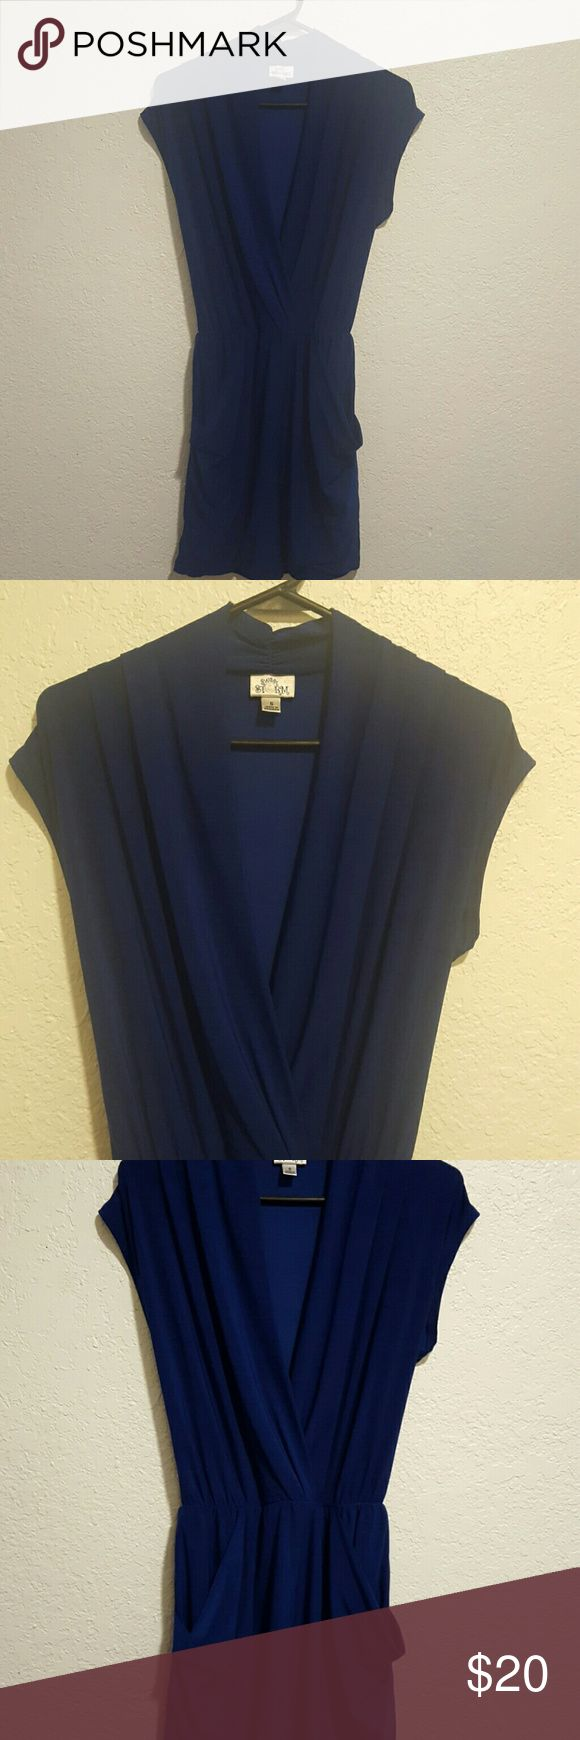 Small royal blue dress great dress w/pockets  to dress up or play down with scarf &/or w/leggings  smoke and pet-free home Dresses Mini